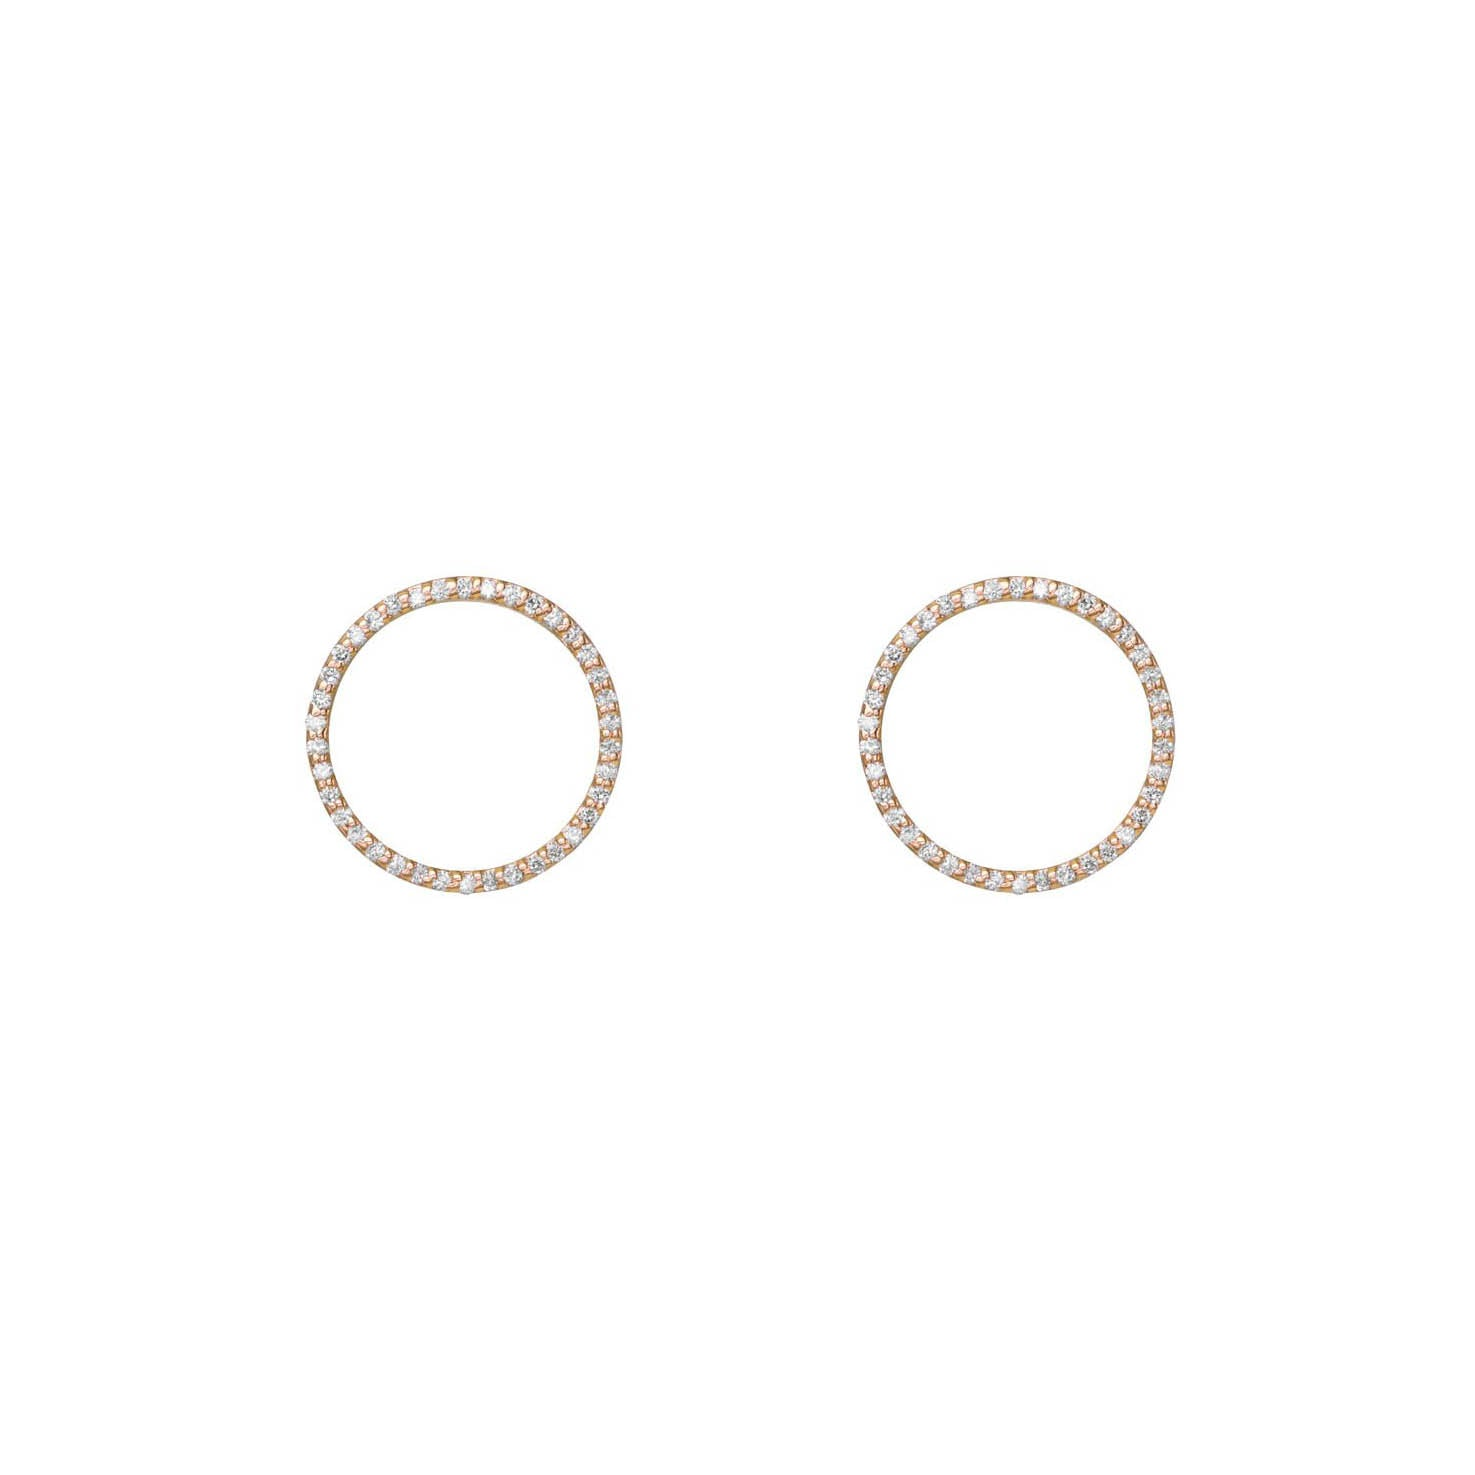 Image of Pave Diamond Hoops